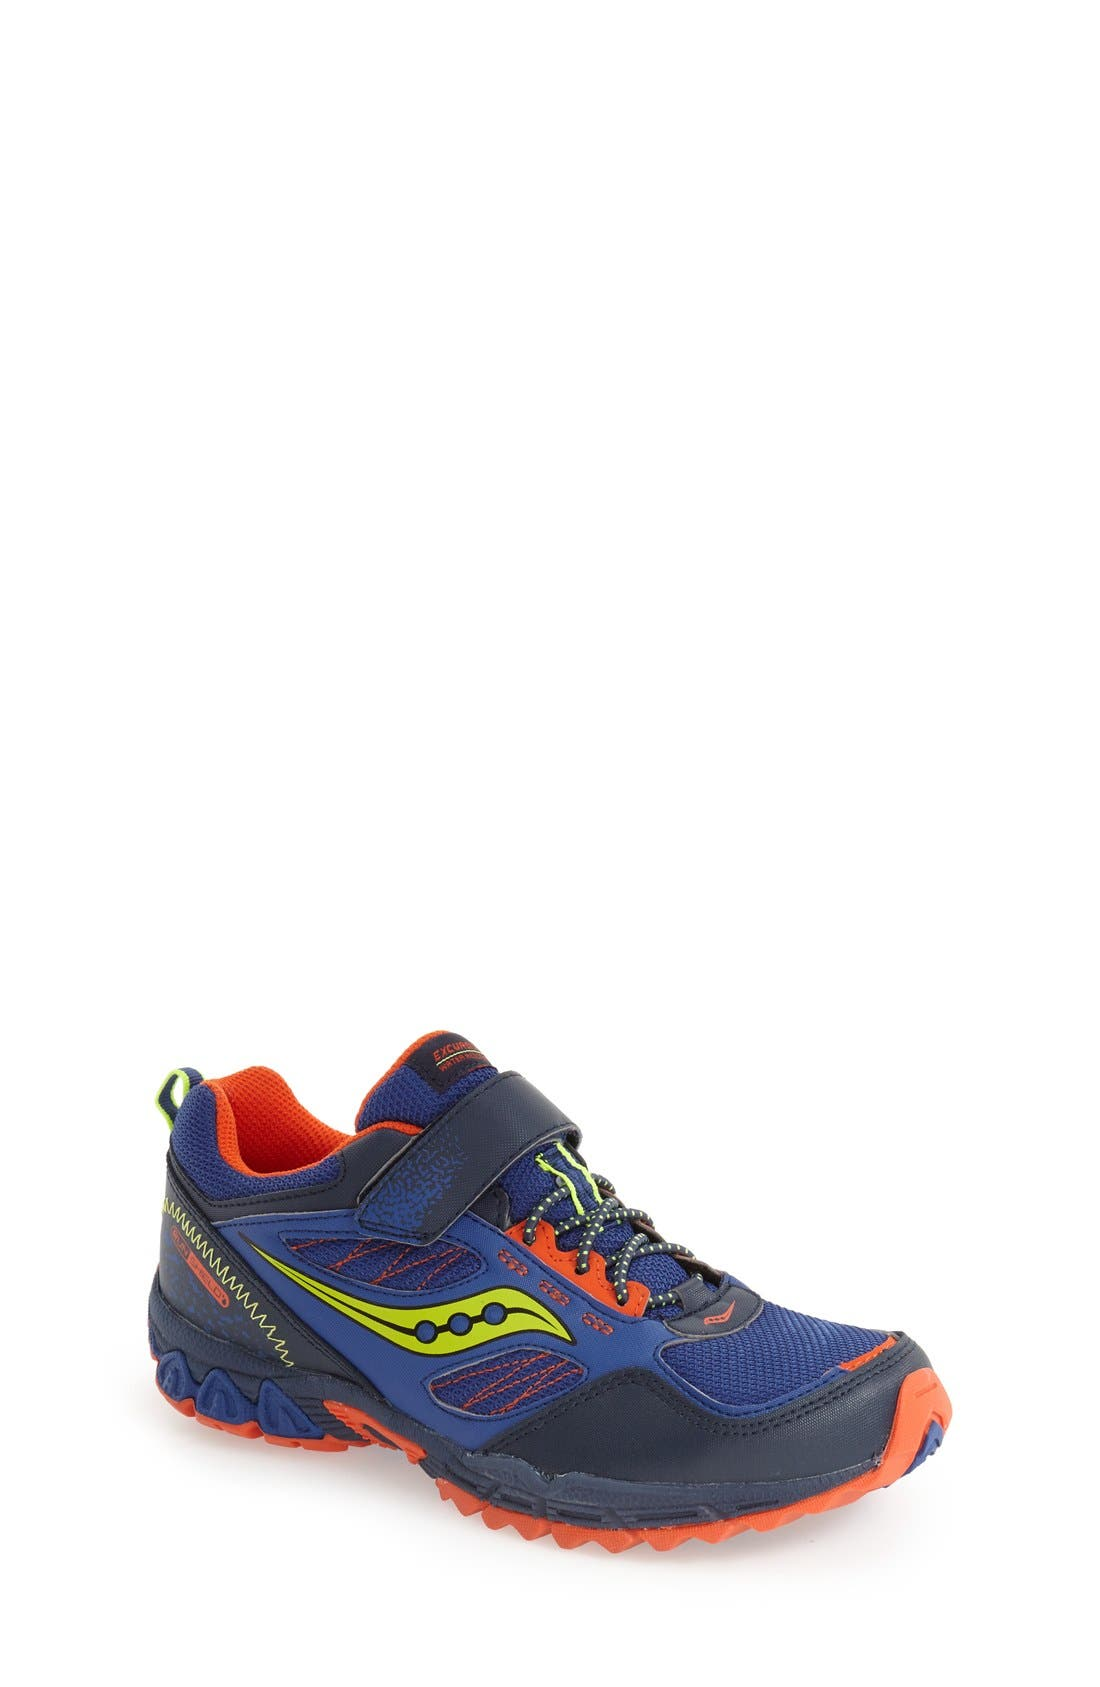 Main Image - Saucony 'Excursion Shield' Water Resistant Trail Shoe (Toddler, Little Kid & Big Kid)